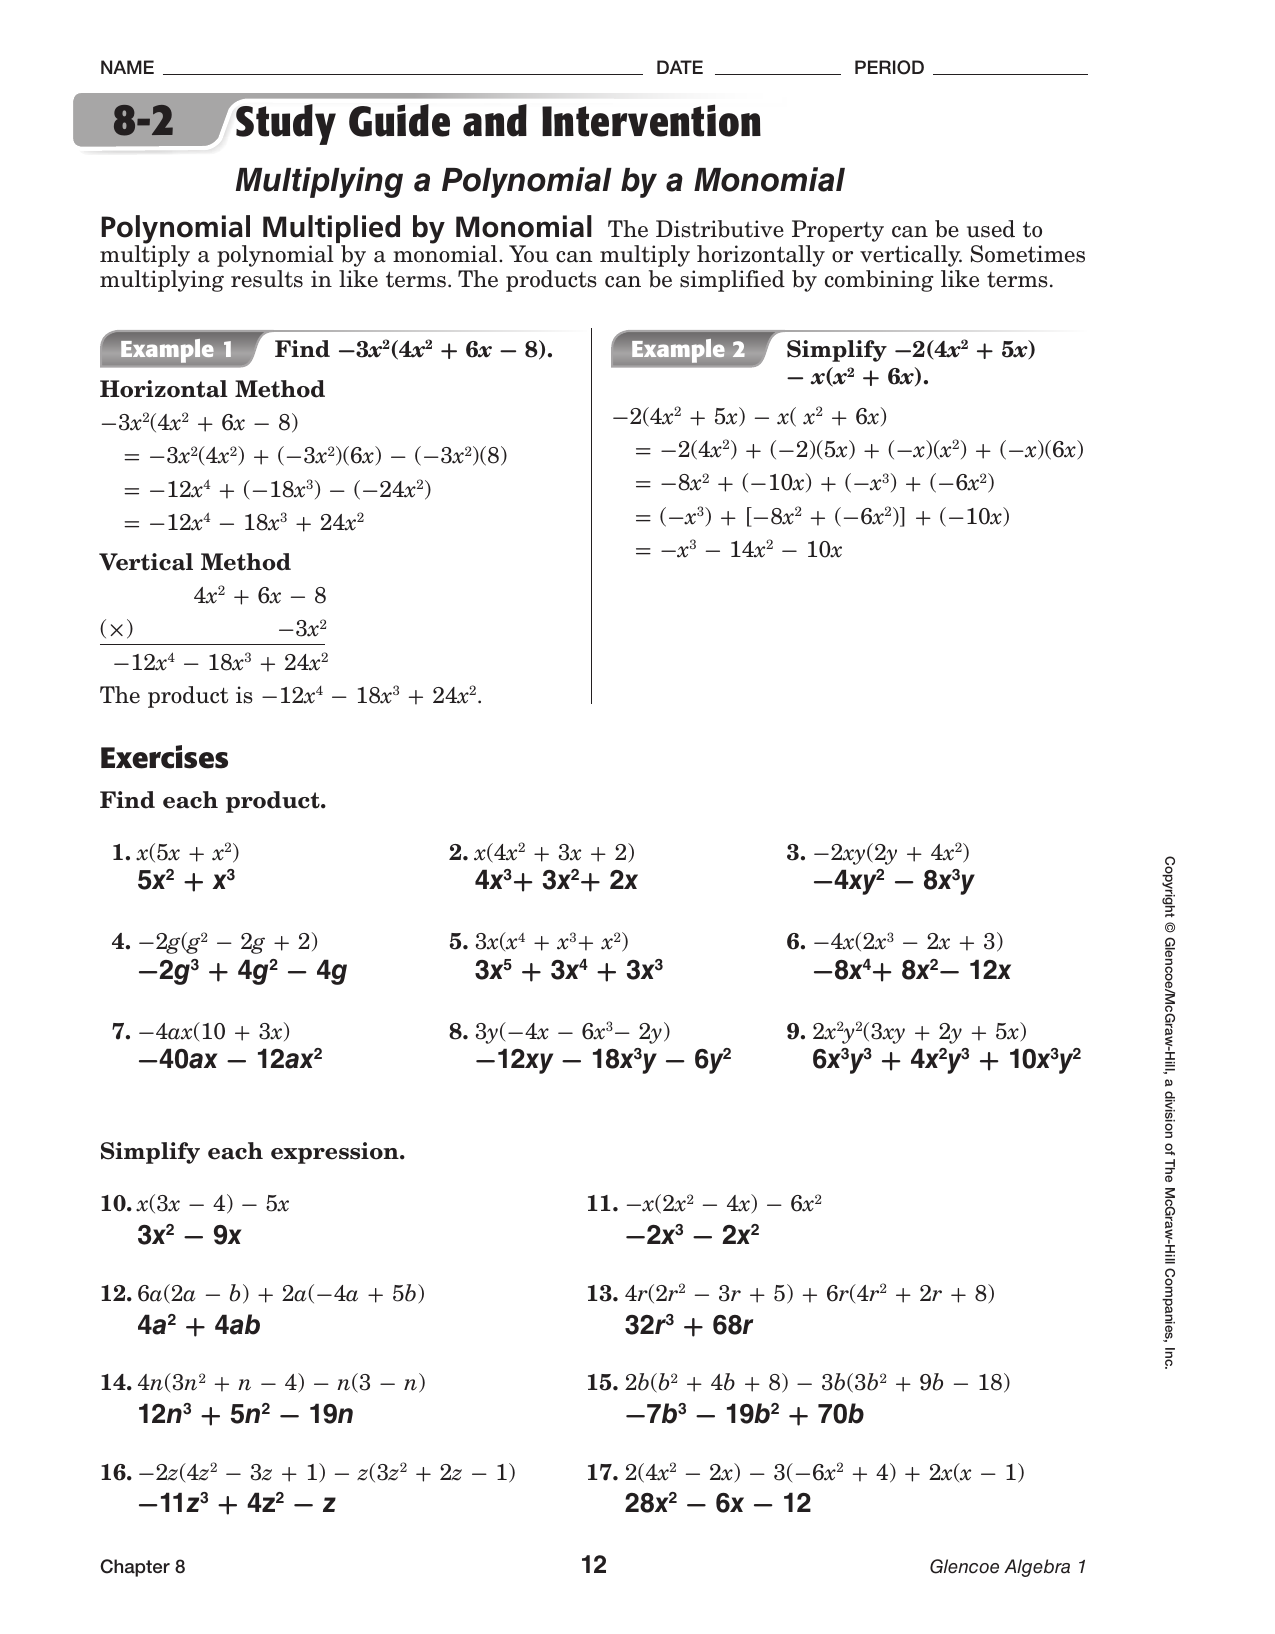 Chapter 8-2 Study Guide and Intervention ANSWERS